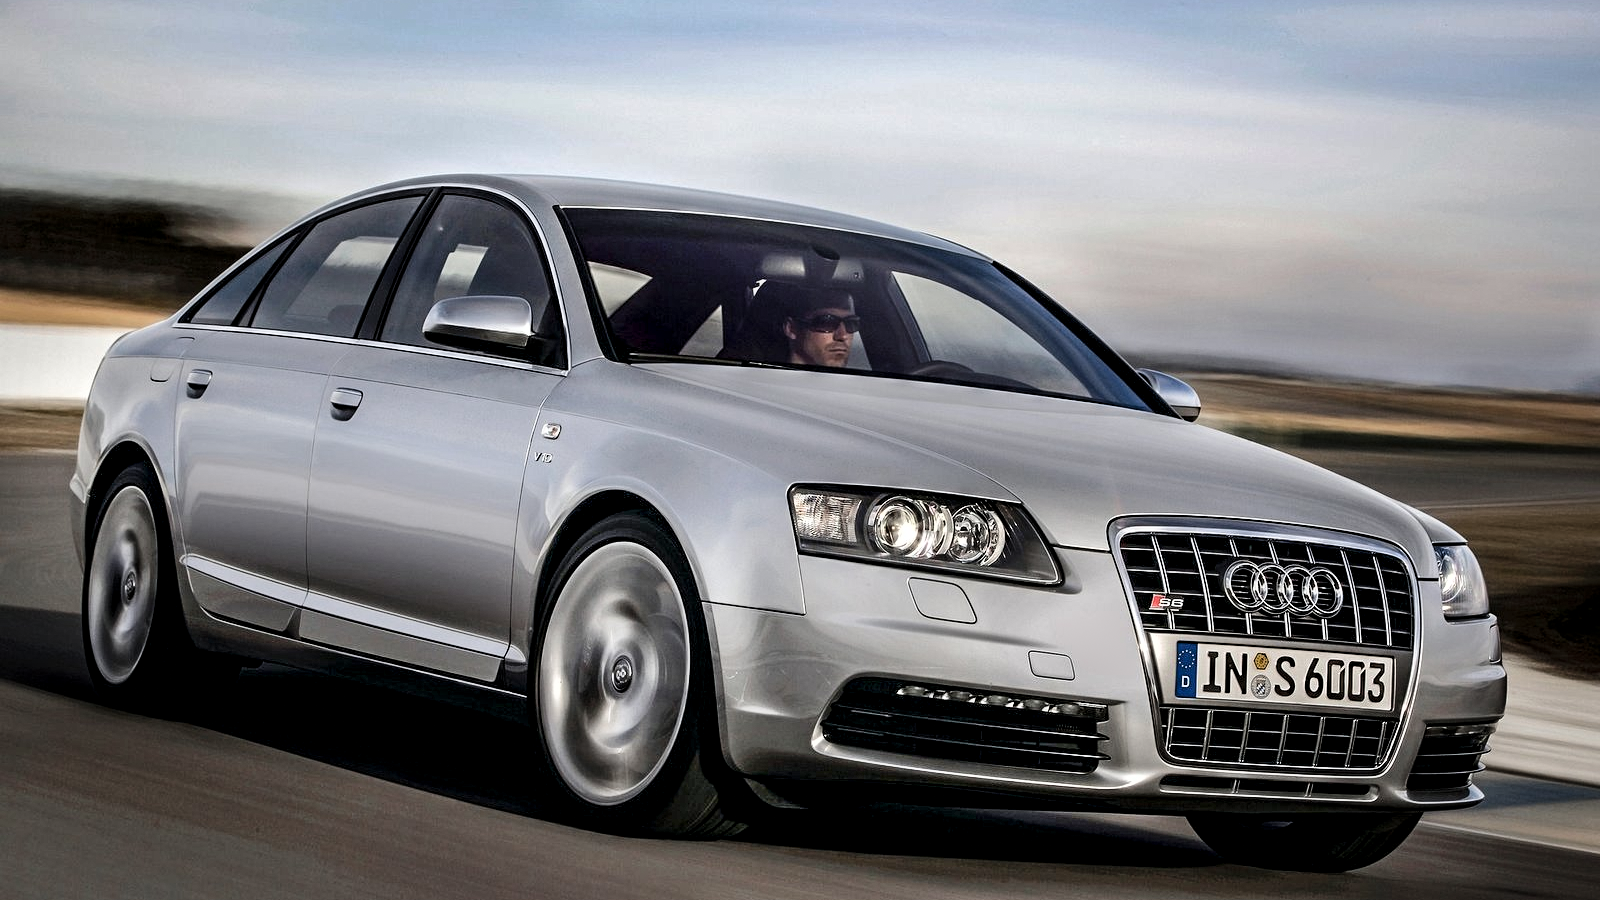 why buy a ford taurus when this ridiculous v10 audi s6 is. Black Bedroom Furniture Sets. Home Design Ideas